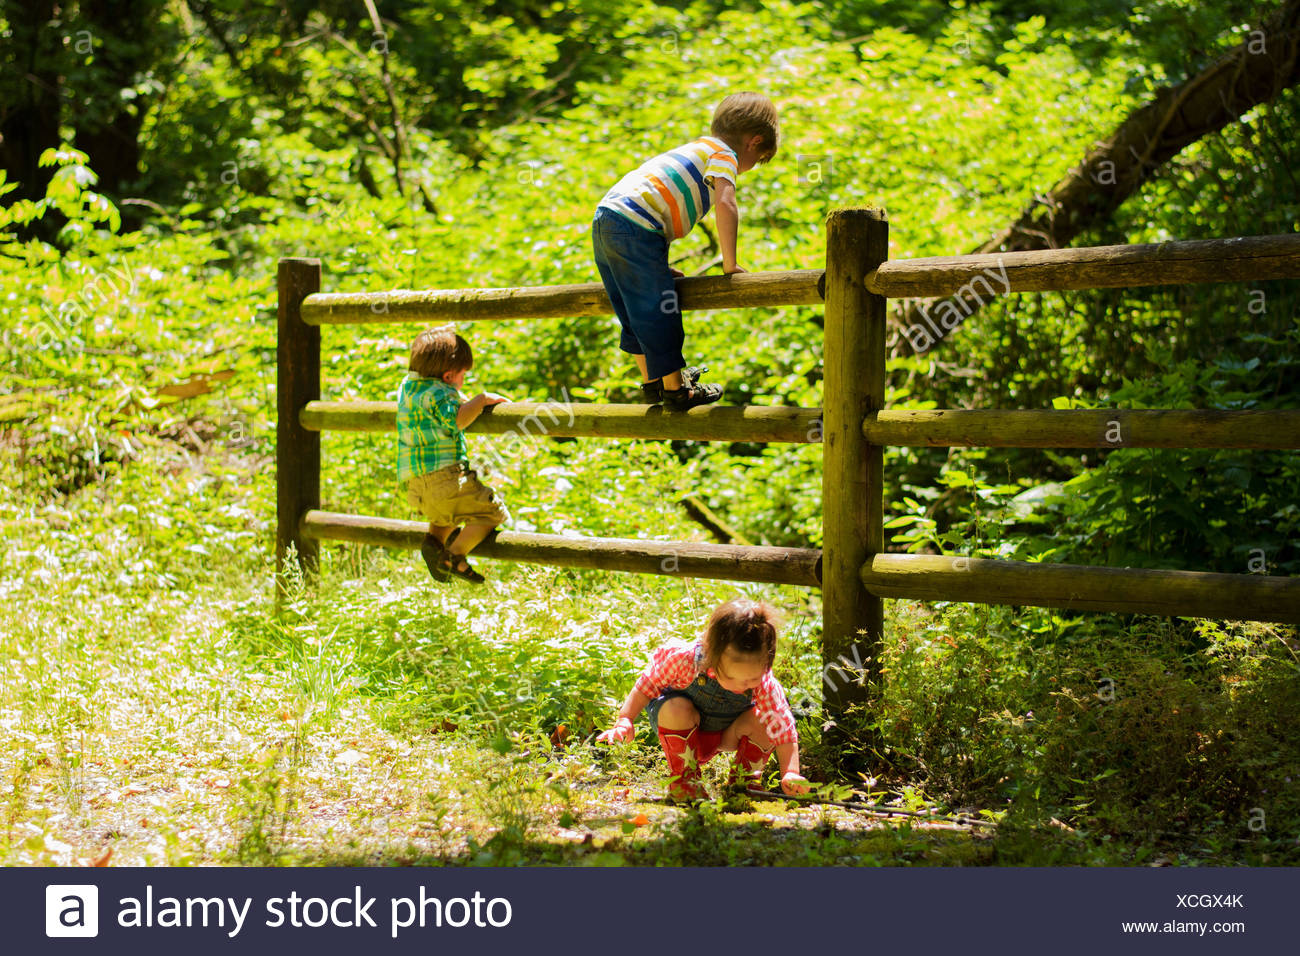 Three children (2-3), (4-5) playing near fence in countryside - Stock Image